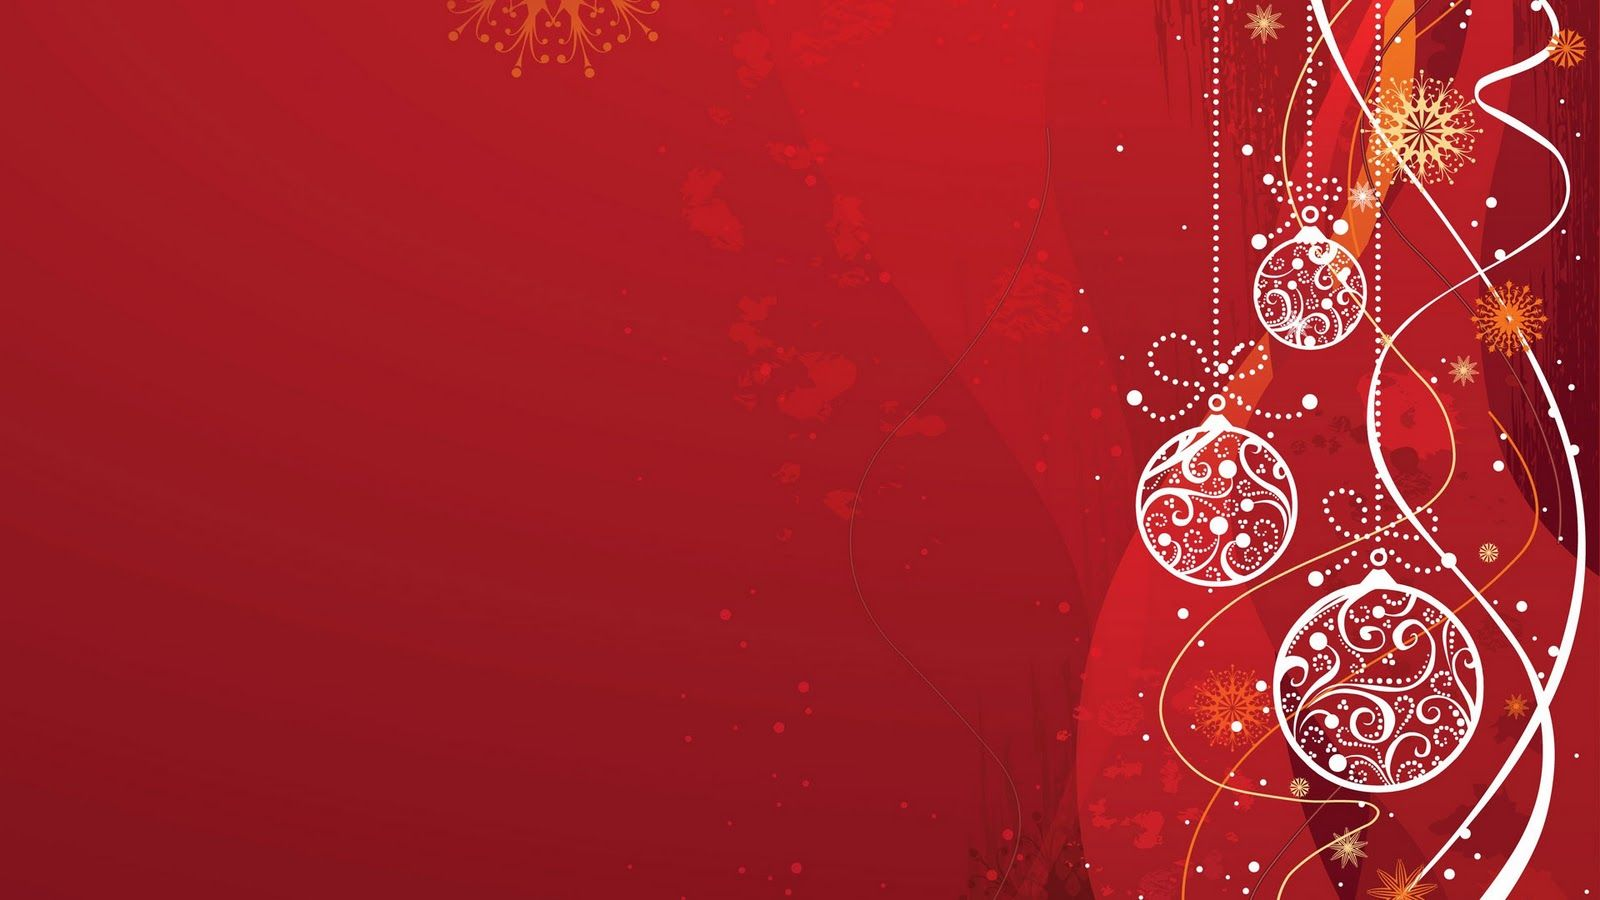 Christmas Background Hd.Pin On Christmas Backgrounds